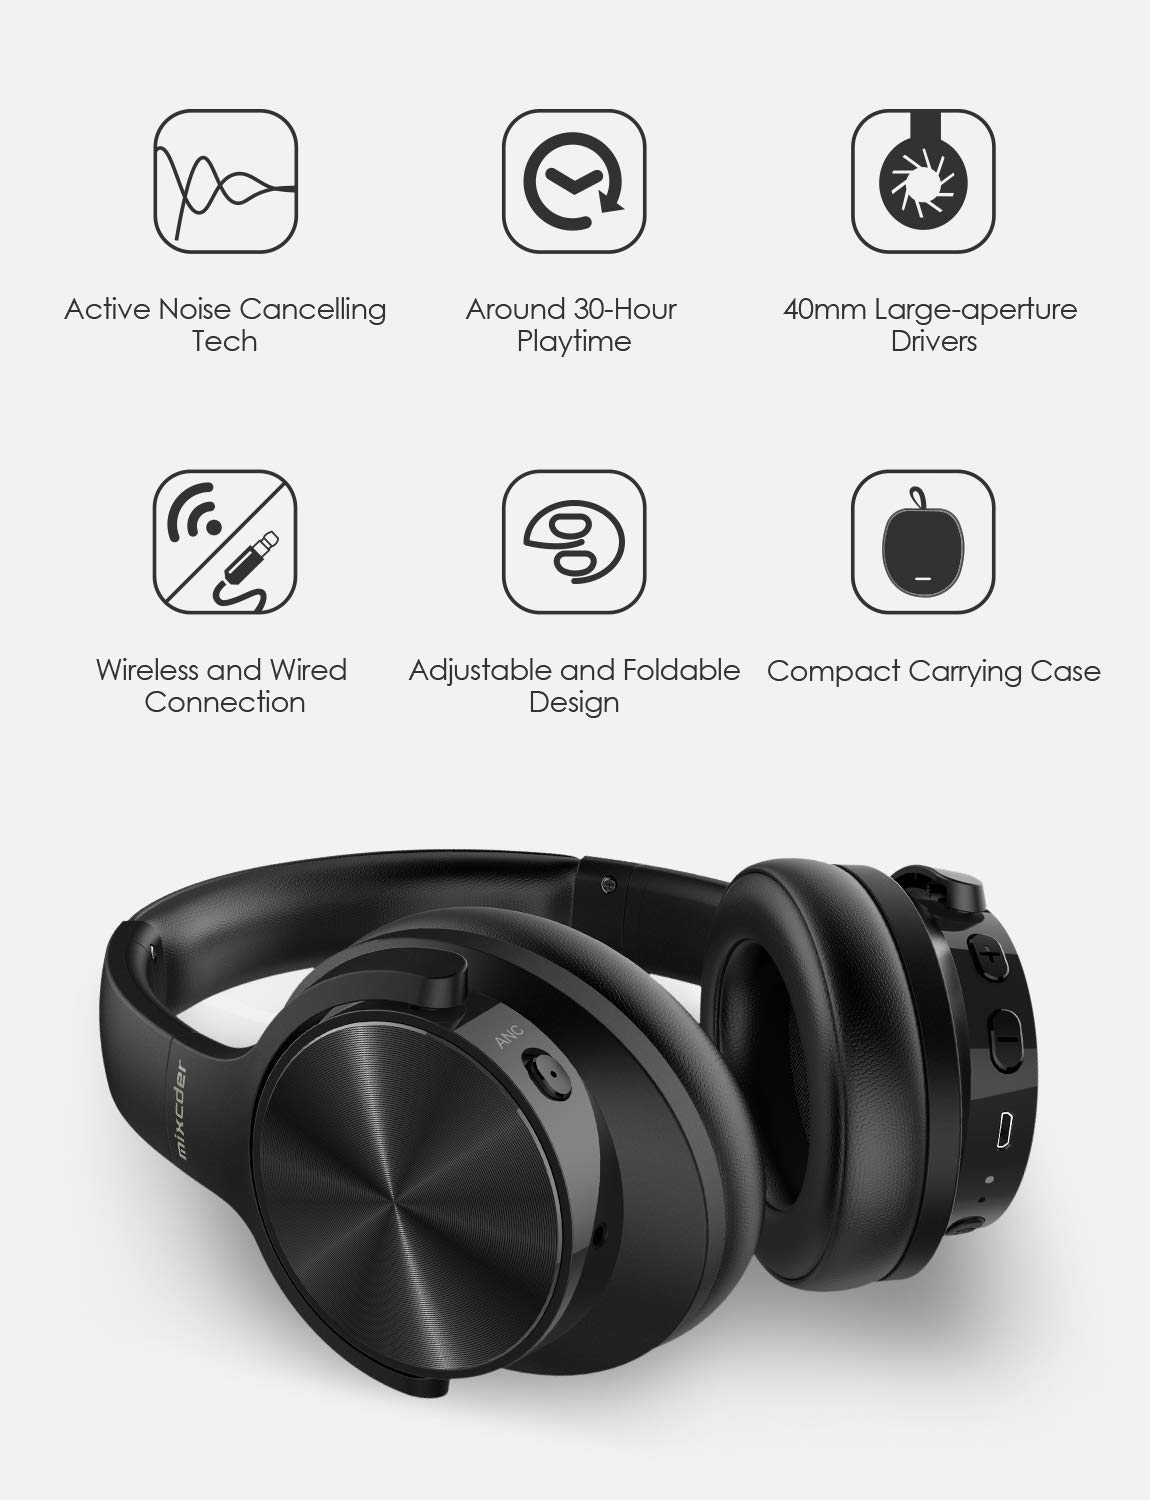 Mixcder E9 Active Noise Cancelling Headphones, Wireless Bluetooth Headphones with Microphone Deep Bass HiFi Stereo Headphones Over Ear Headset, 30H Playtime for Travel Work TV PC Cellphone -Black